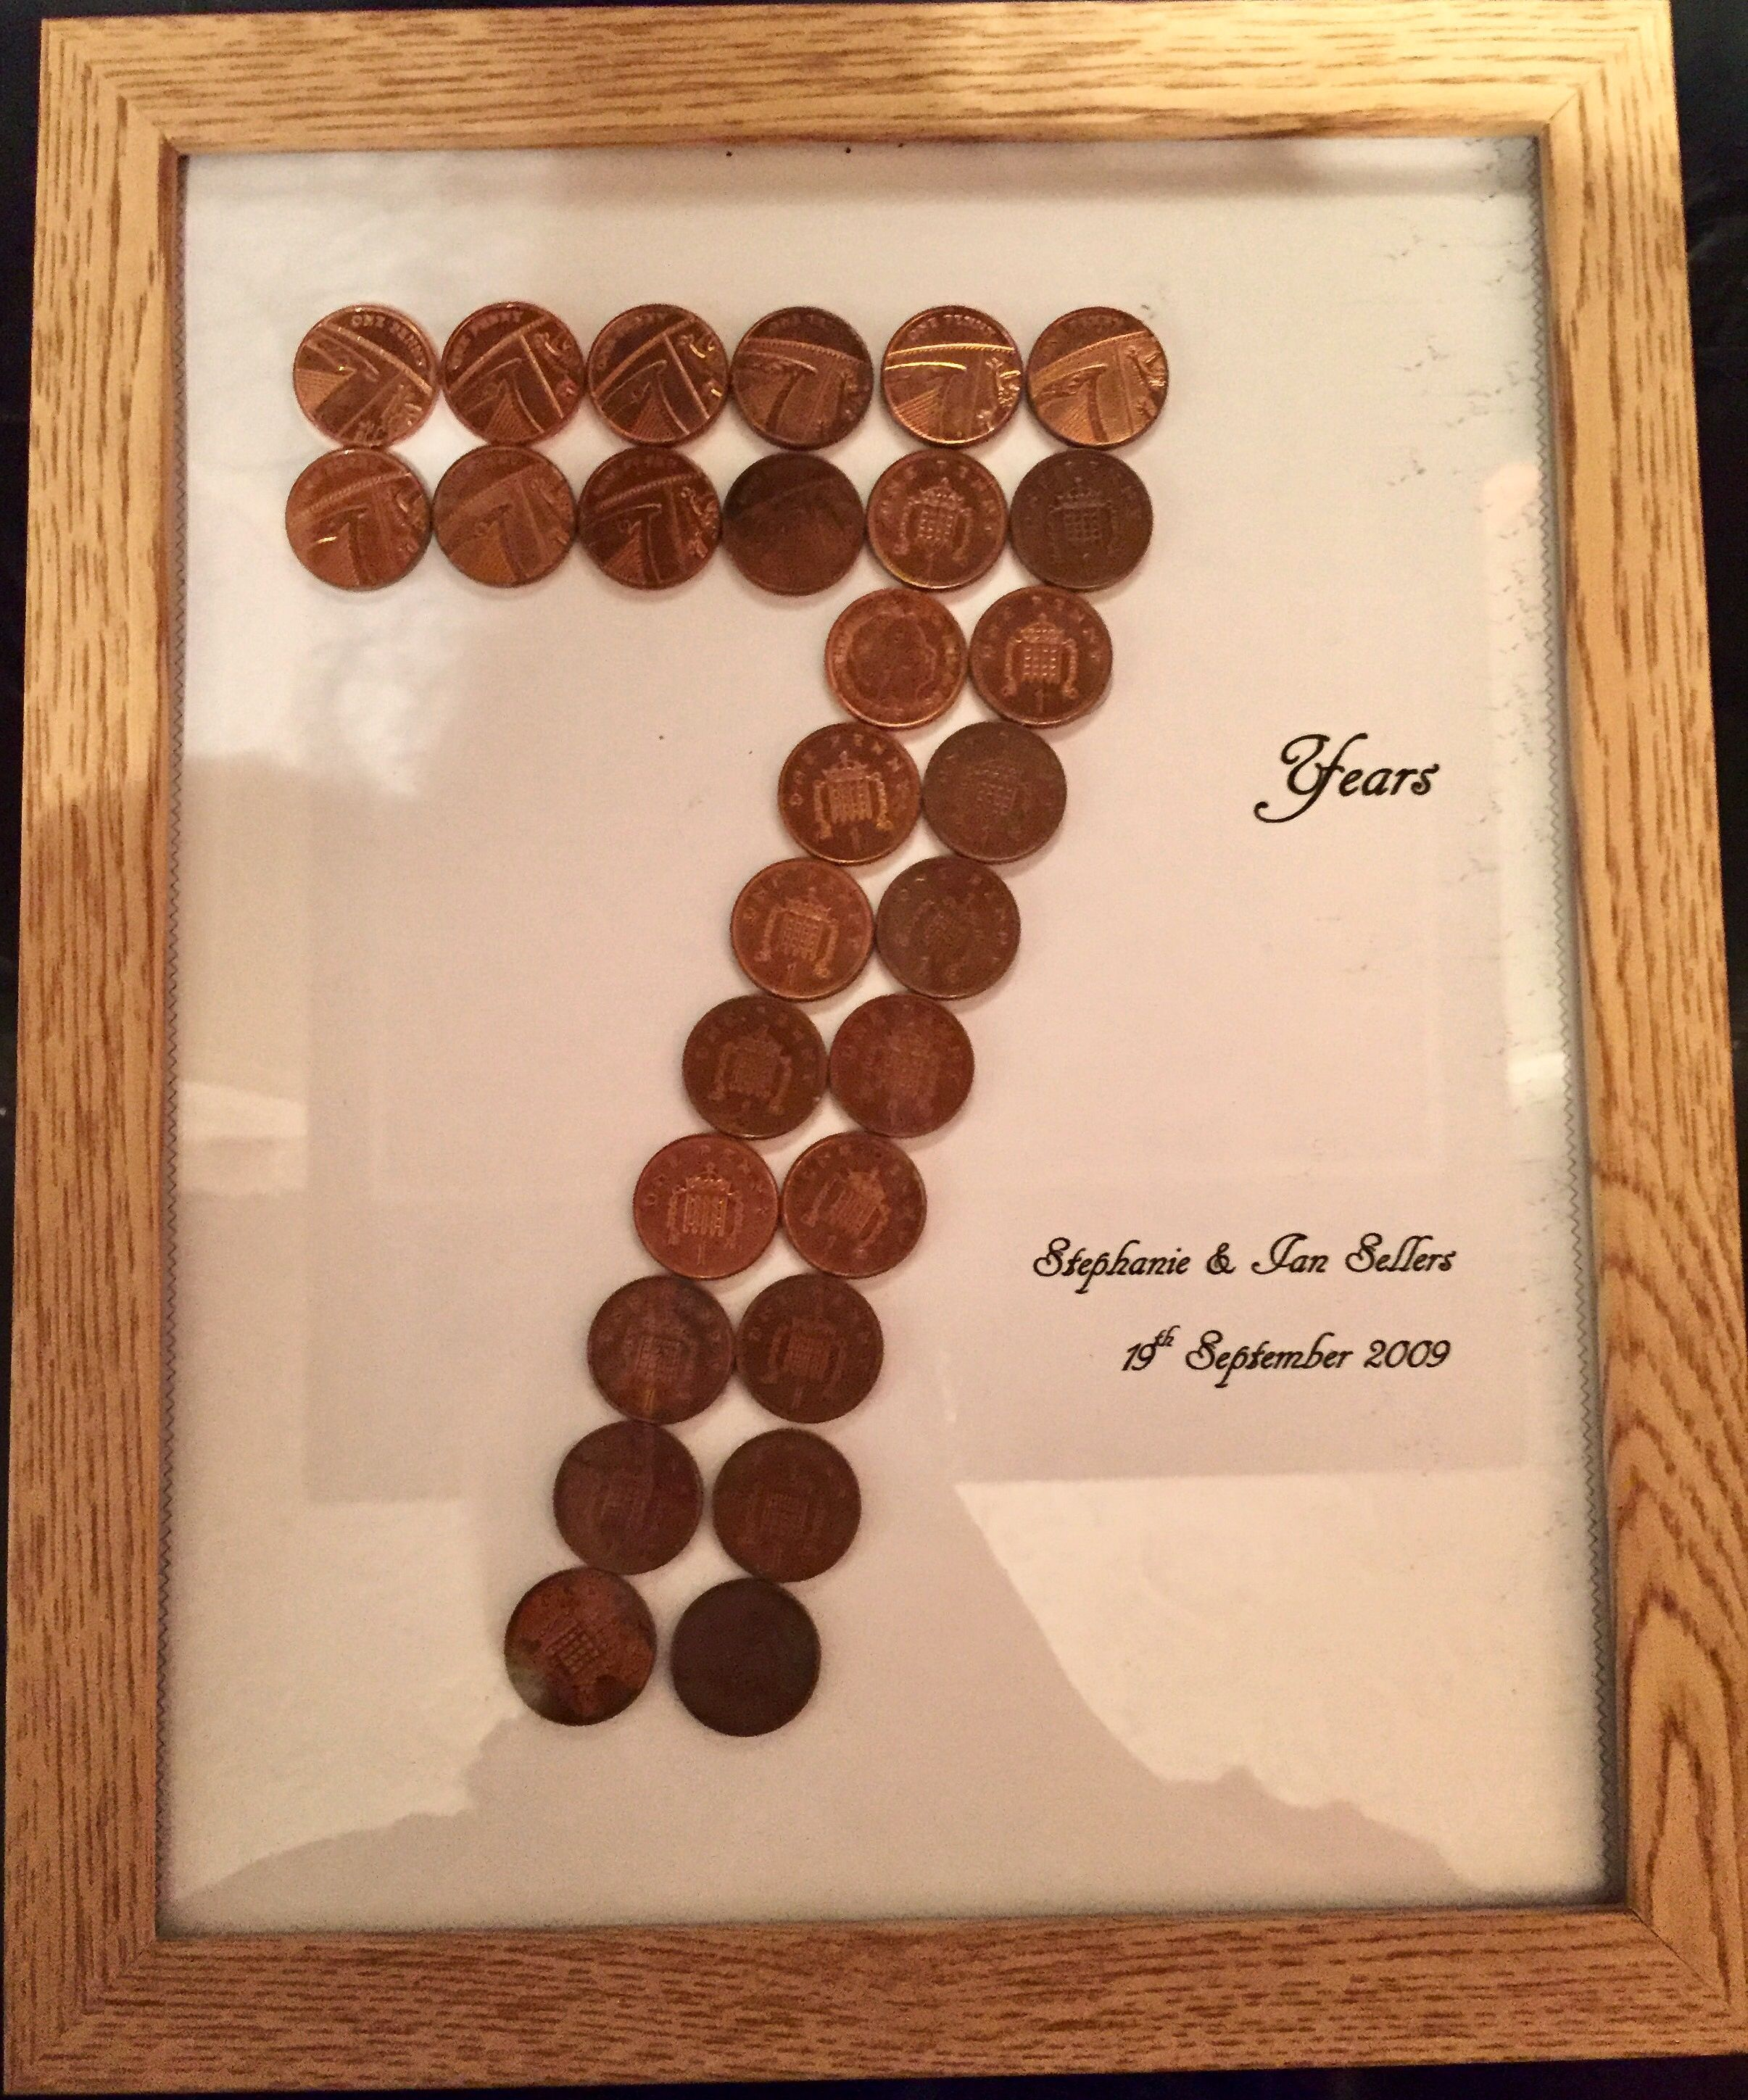 7th wedding anniversary (copper) gift | miscellaneous | pinterest